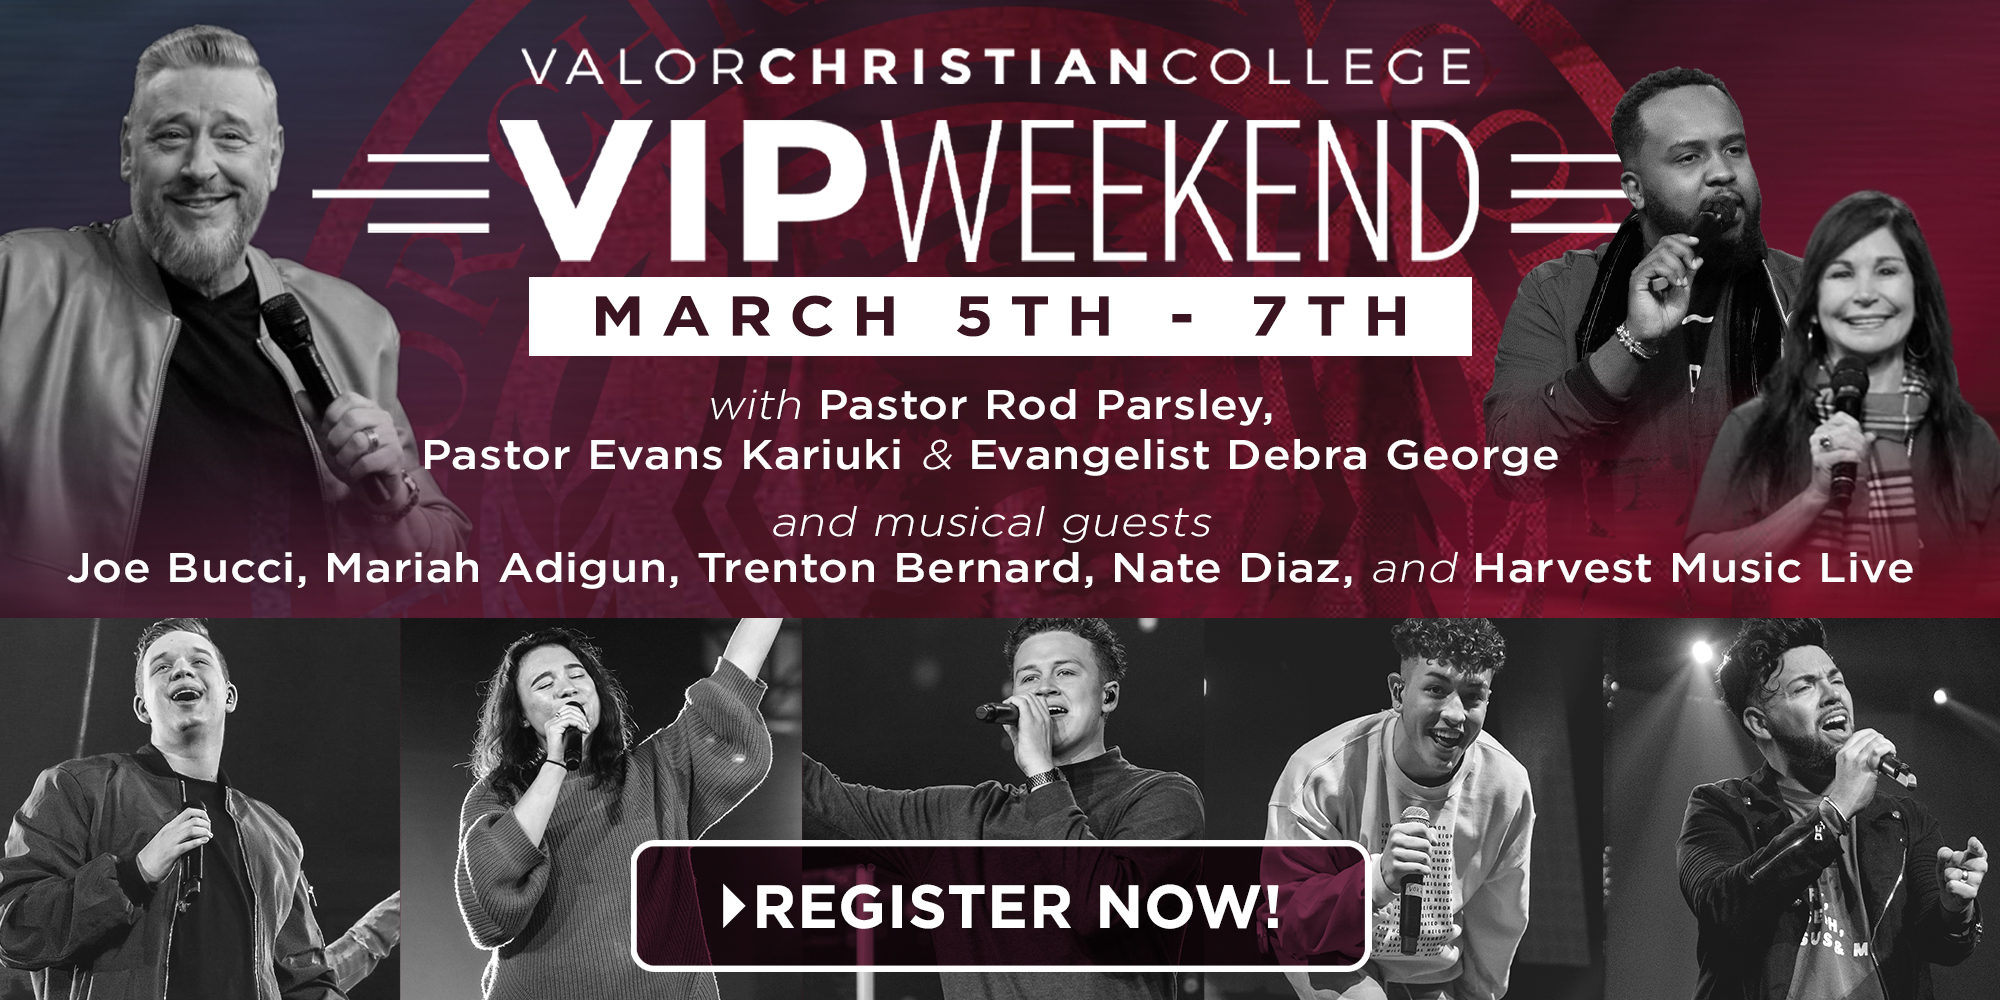 Valor Christian College VIP Weekend March 5th - 7th with Pastor Rod Parsley, Pastor Evans Karikui & Evangelist Debra George and musical guests Joe Bucci, Mariah Adigun, Trenton Bernard, Nate Diaz, and Harvest Music Live